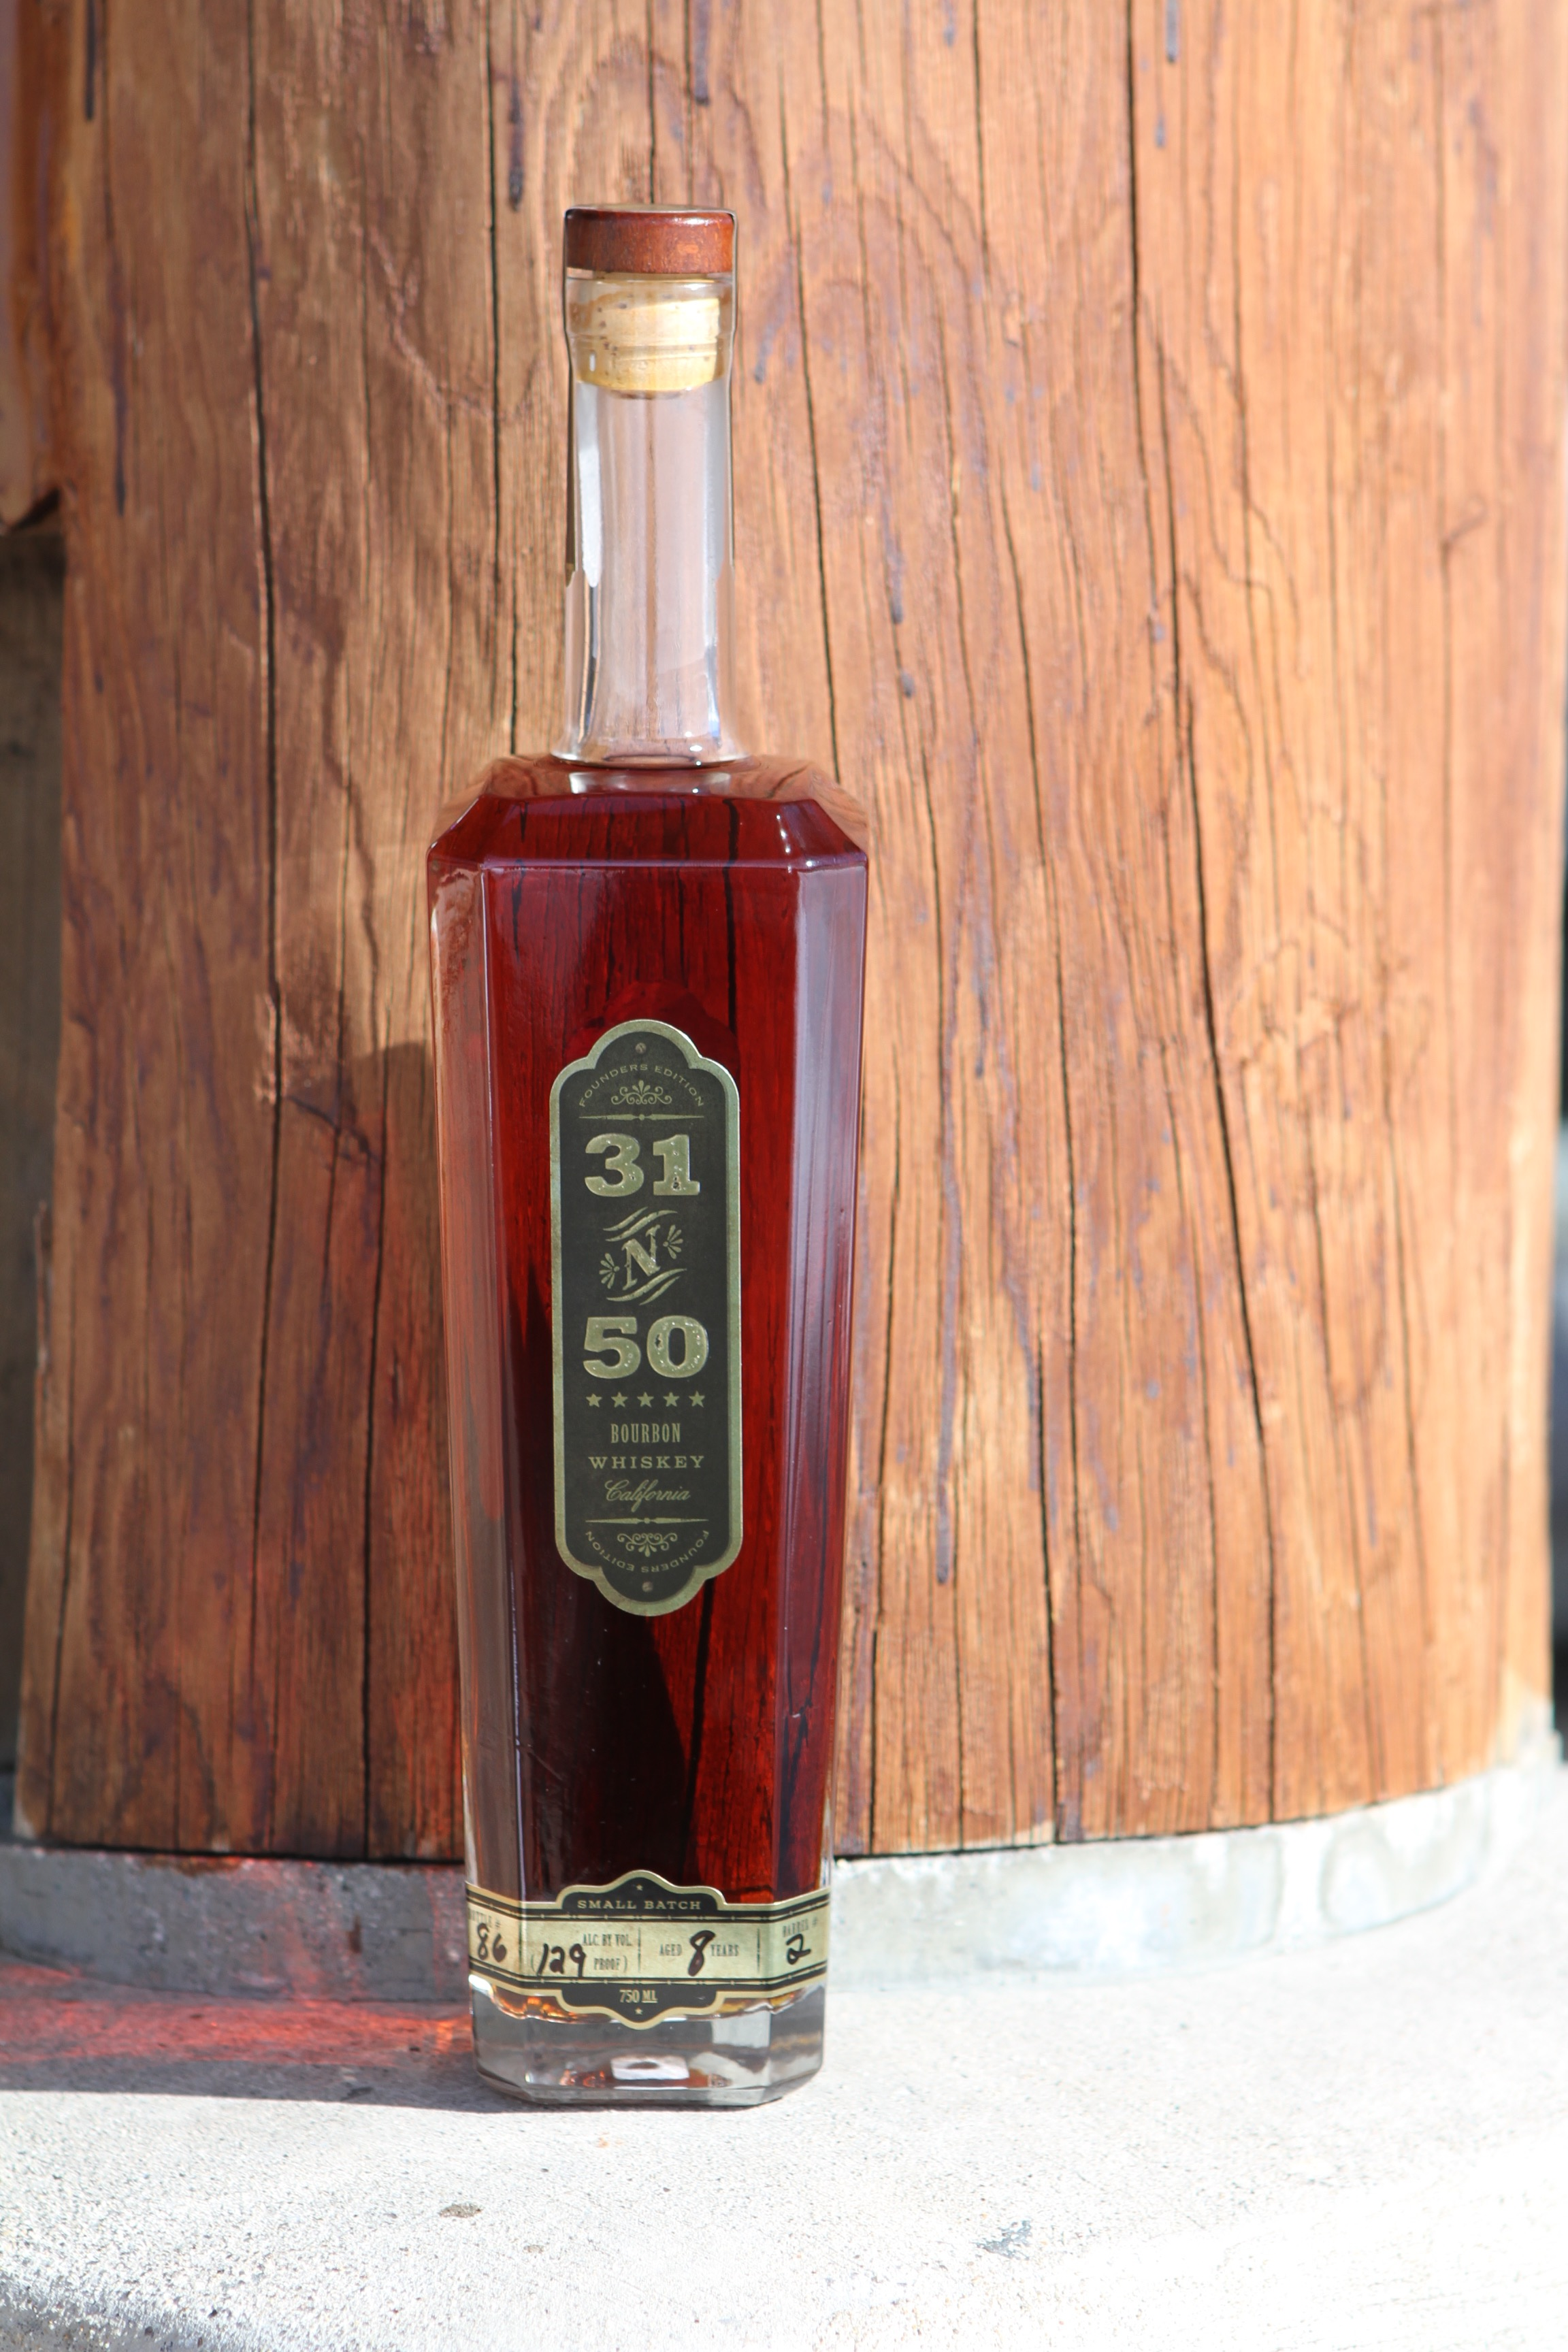 31n50 Bourbon - This is our original aging project. We wanted to prove the aging process of our warehouse and learn what happens over 10+ years. Barrel 1 started at 121 proof and 7 years of rested aging. Each successive barrel has yielded higher proof and less bottles per barrel.31n50 shows the impact of both high and low temperature cycles and a distinct lack of humidity over most of the year. The daily swings in temperature also contribute greatly to how deep the whiskey penetrates the wood.Now each barrel is over 10.5 years old and is being bottled at different barrel proof (s). The final 8 barrels of the 12 originals are being bottled now (barrels 1 - 4 are sold out). They will be sold in succession.Current Barrel: No.5142.6 PF